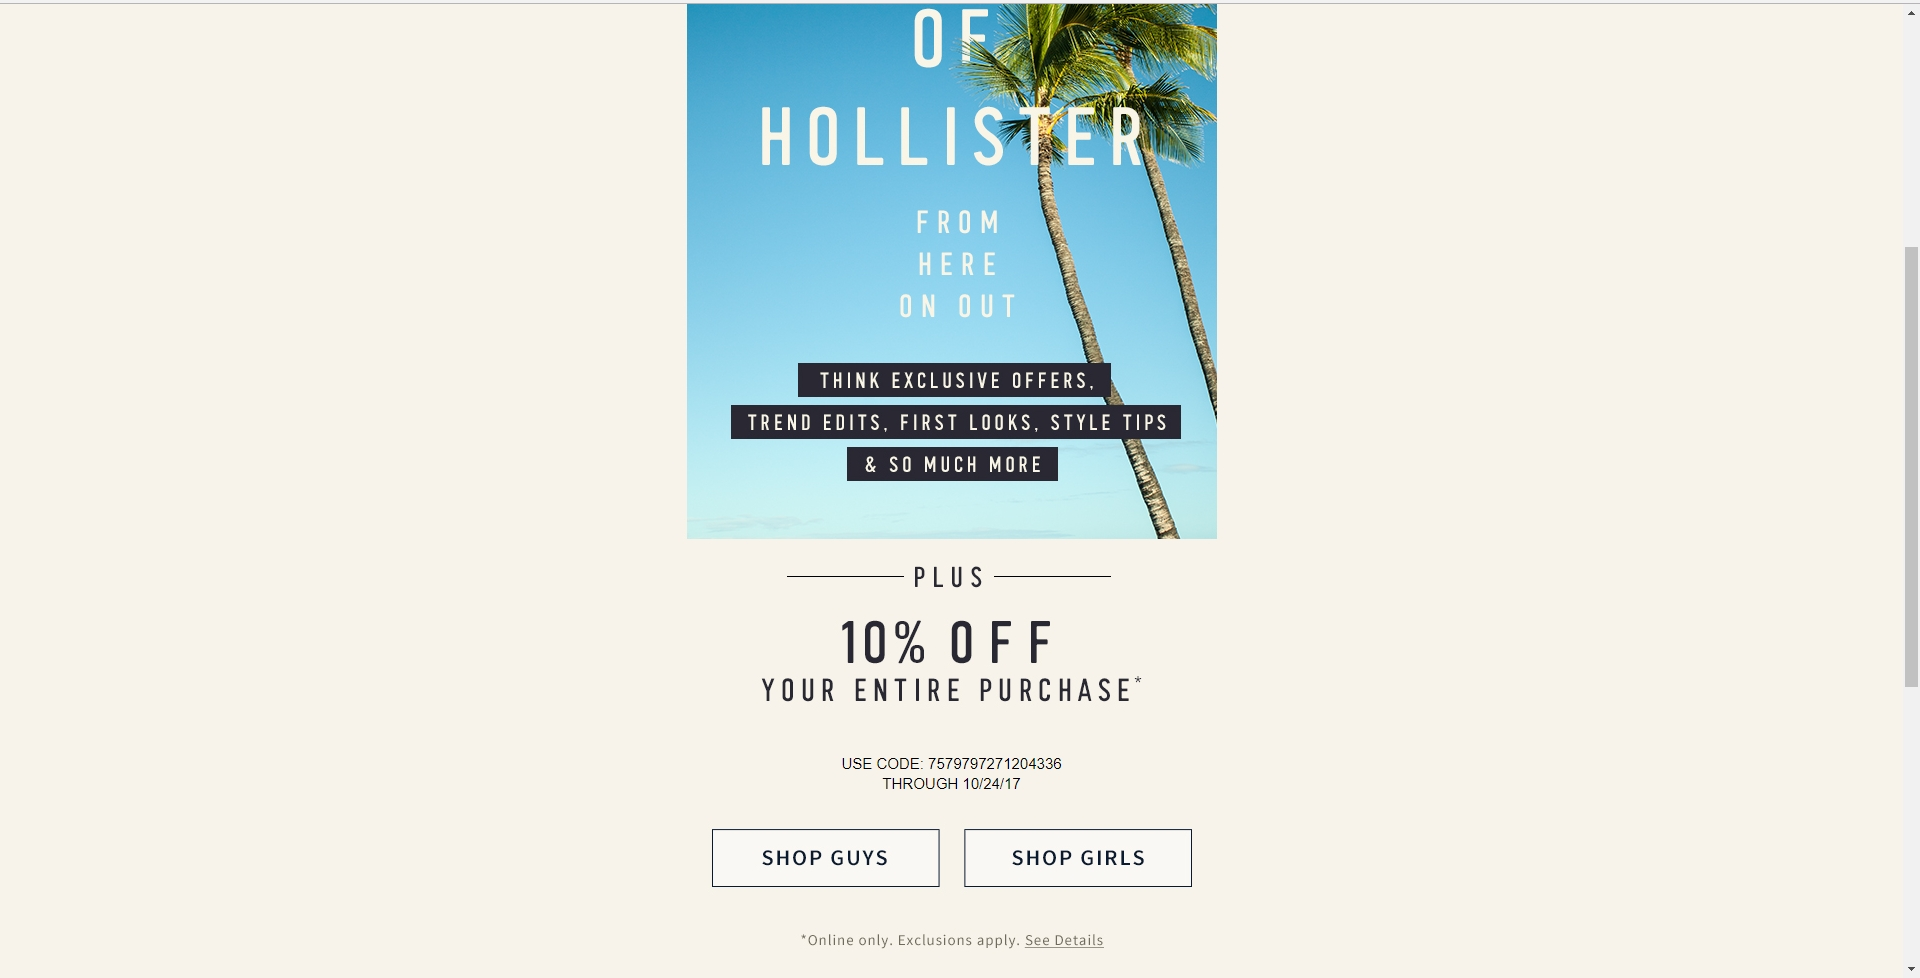 hollister singles Join one of best online dating sites for single people you will meet single, smart, beautiful men and women in your city.